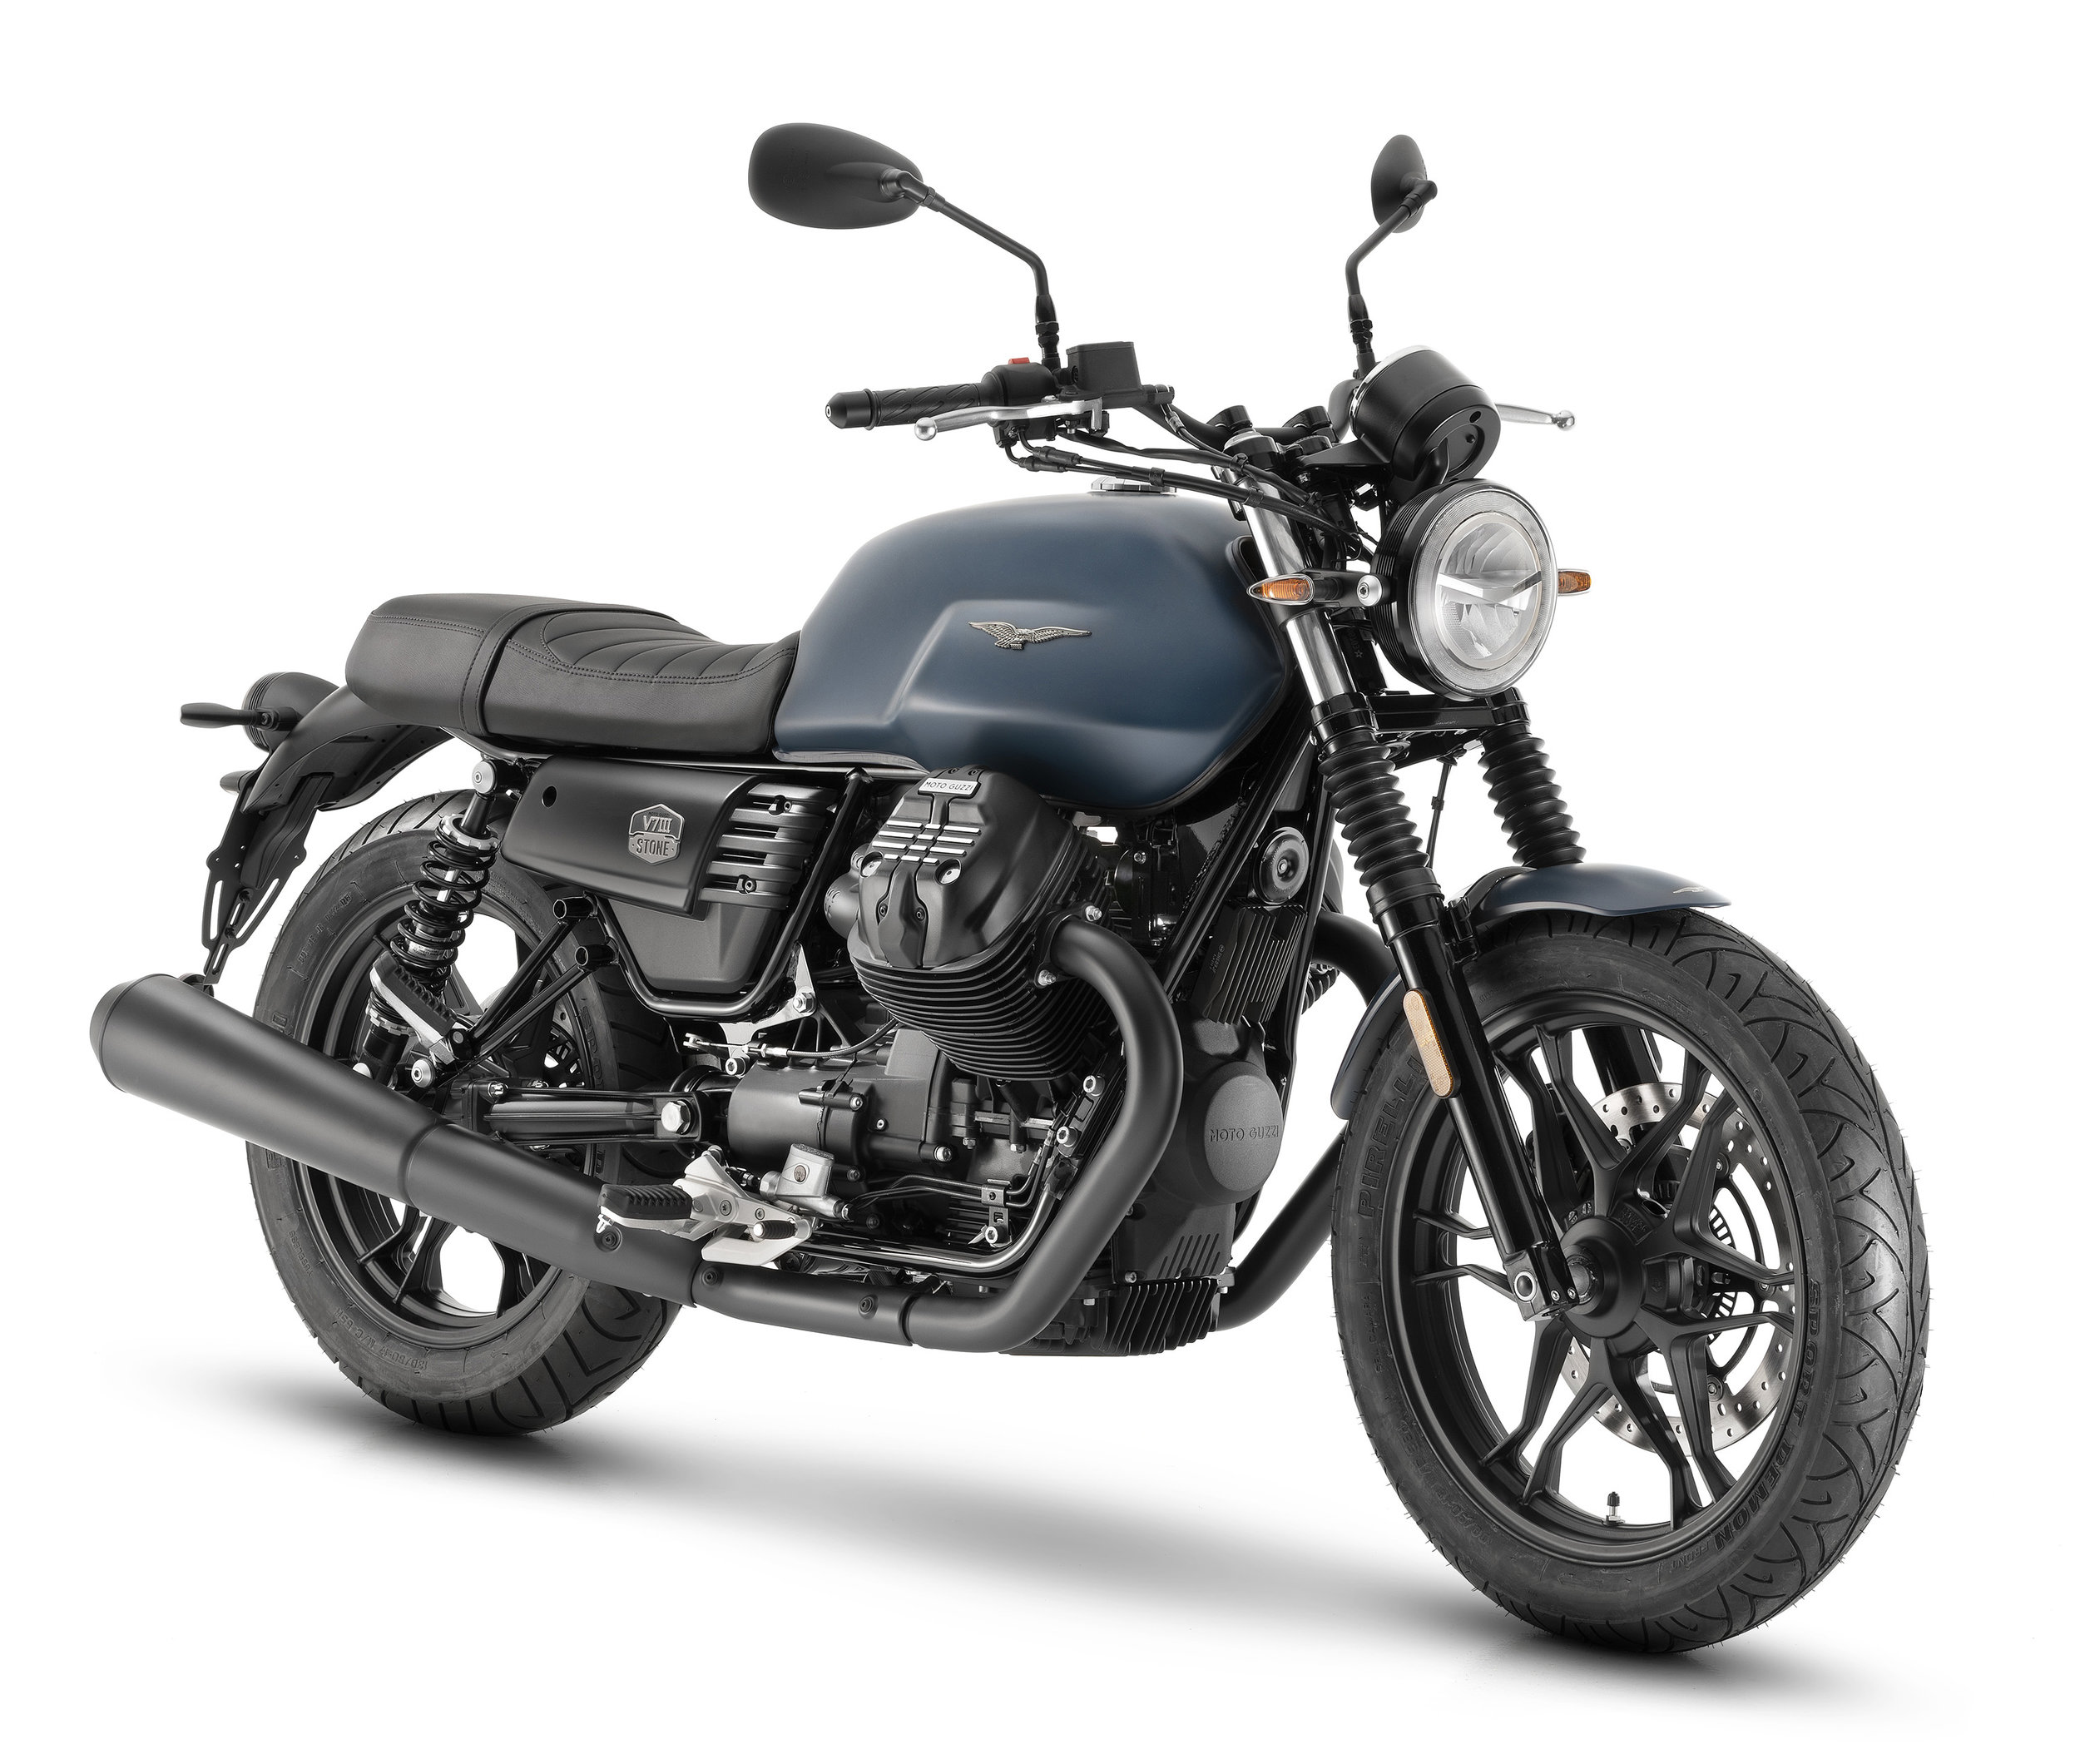 01-moto-guzzi-v7-iii-stone-night-pack.jpg